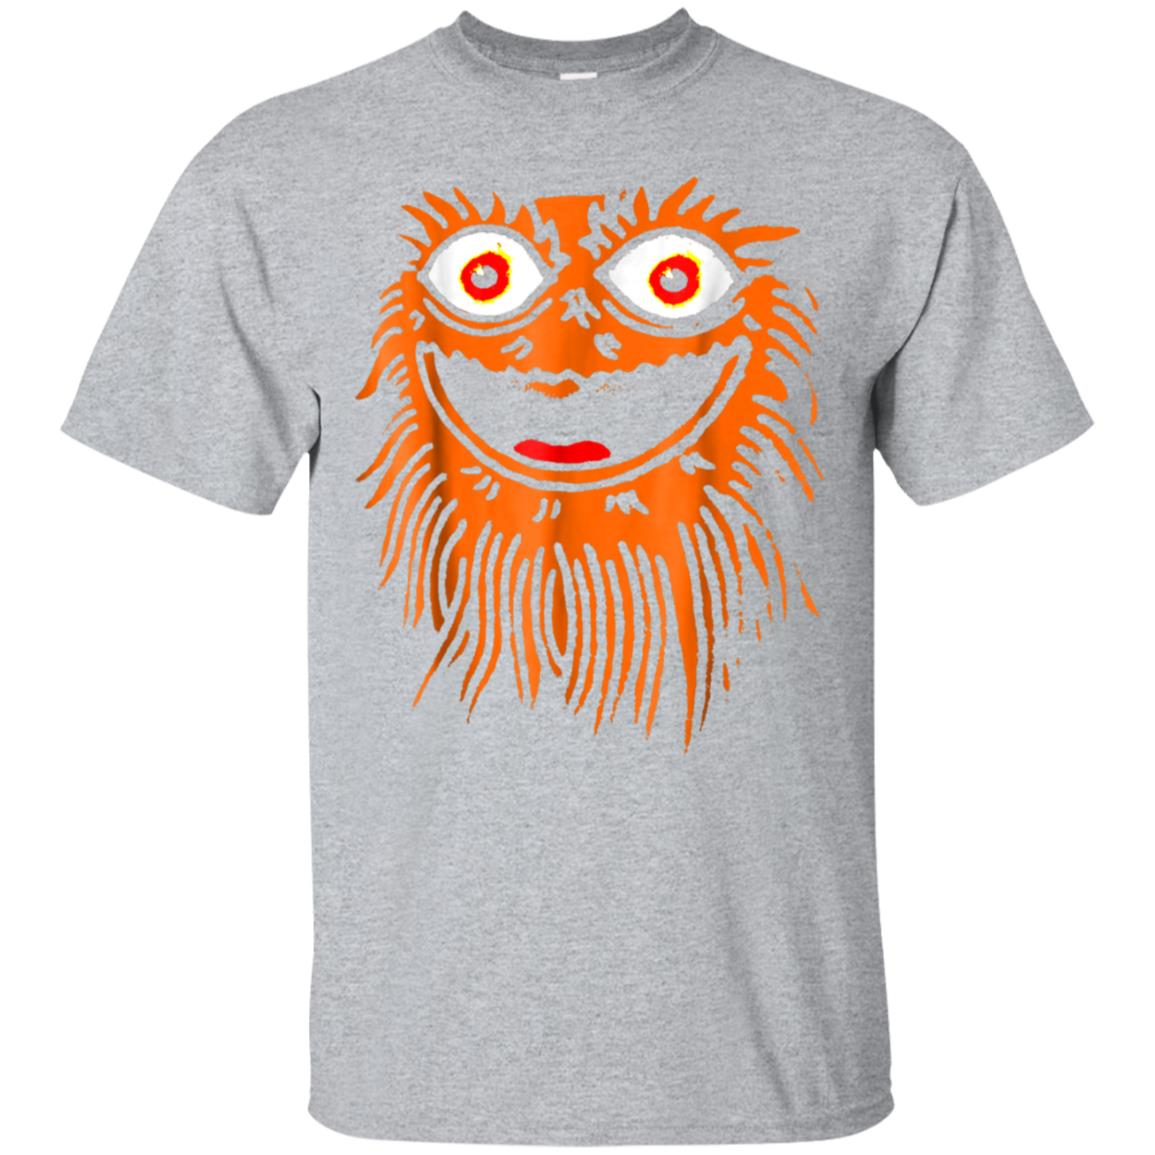 Gritty Mascot Face Sports Team Funny T-Shirt 99promocode